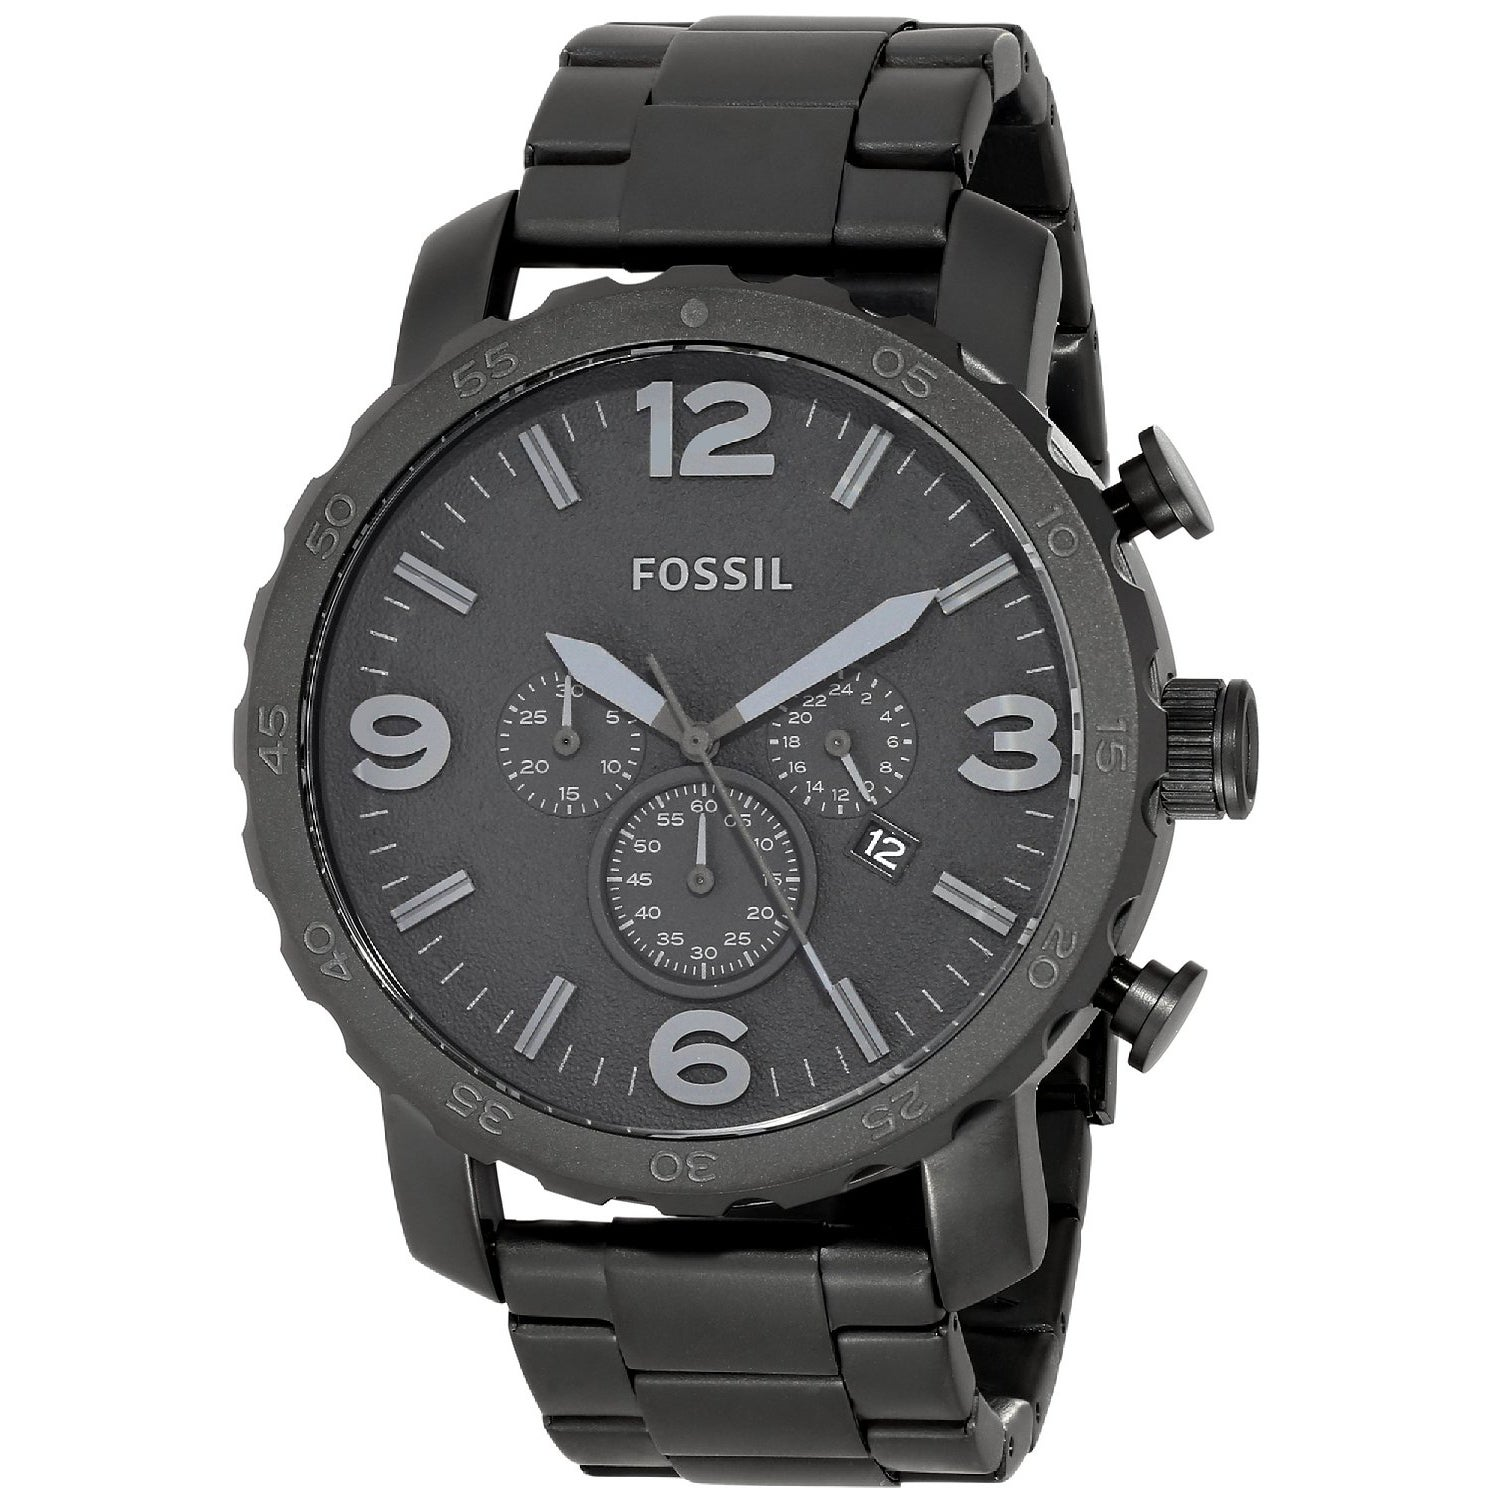 Fossil Men's JR1401 Nate Black Stainless Steel Watch (Fos...